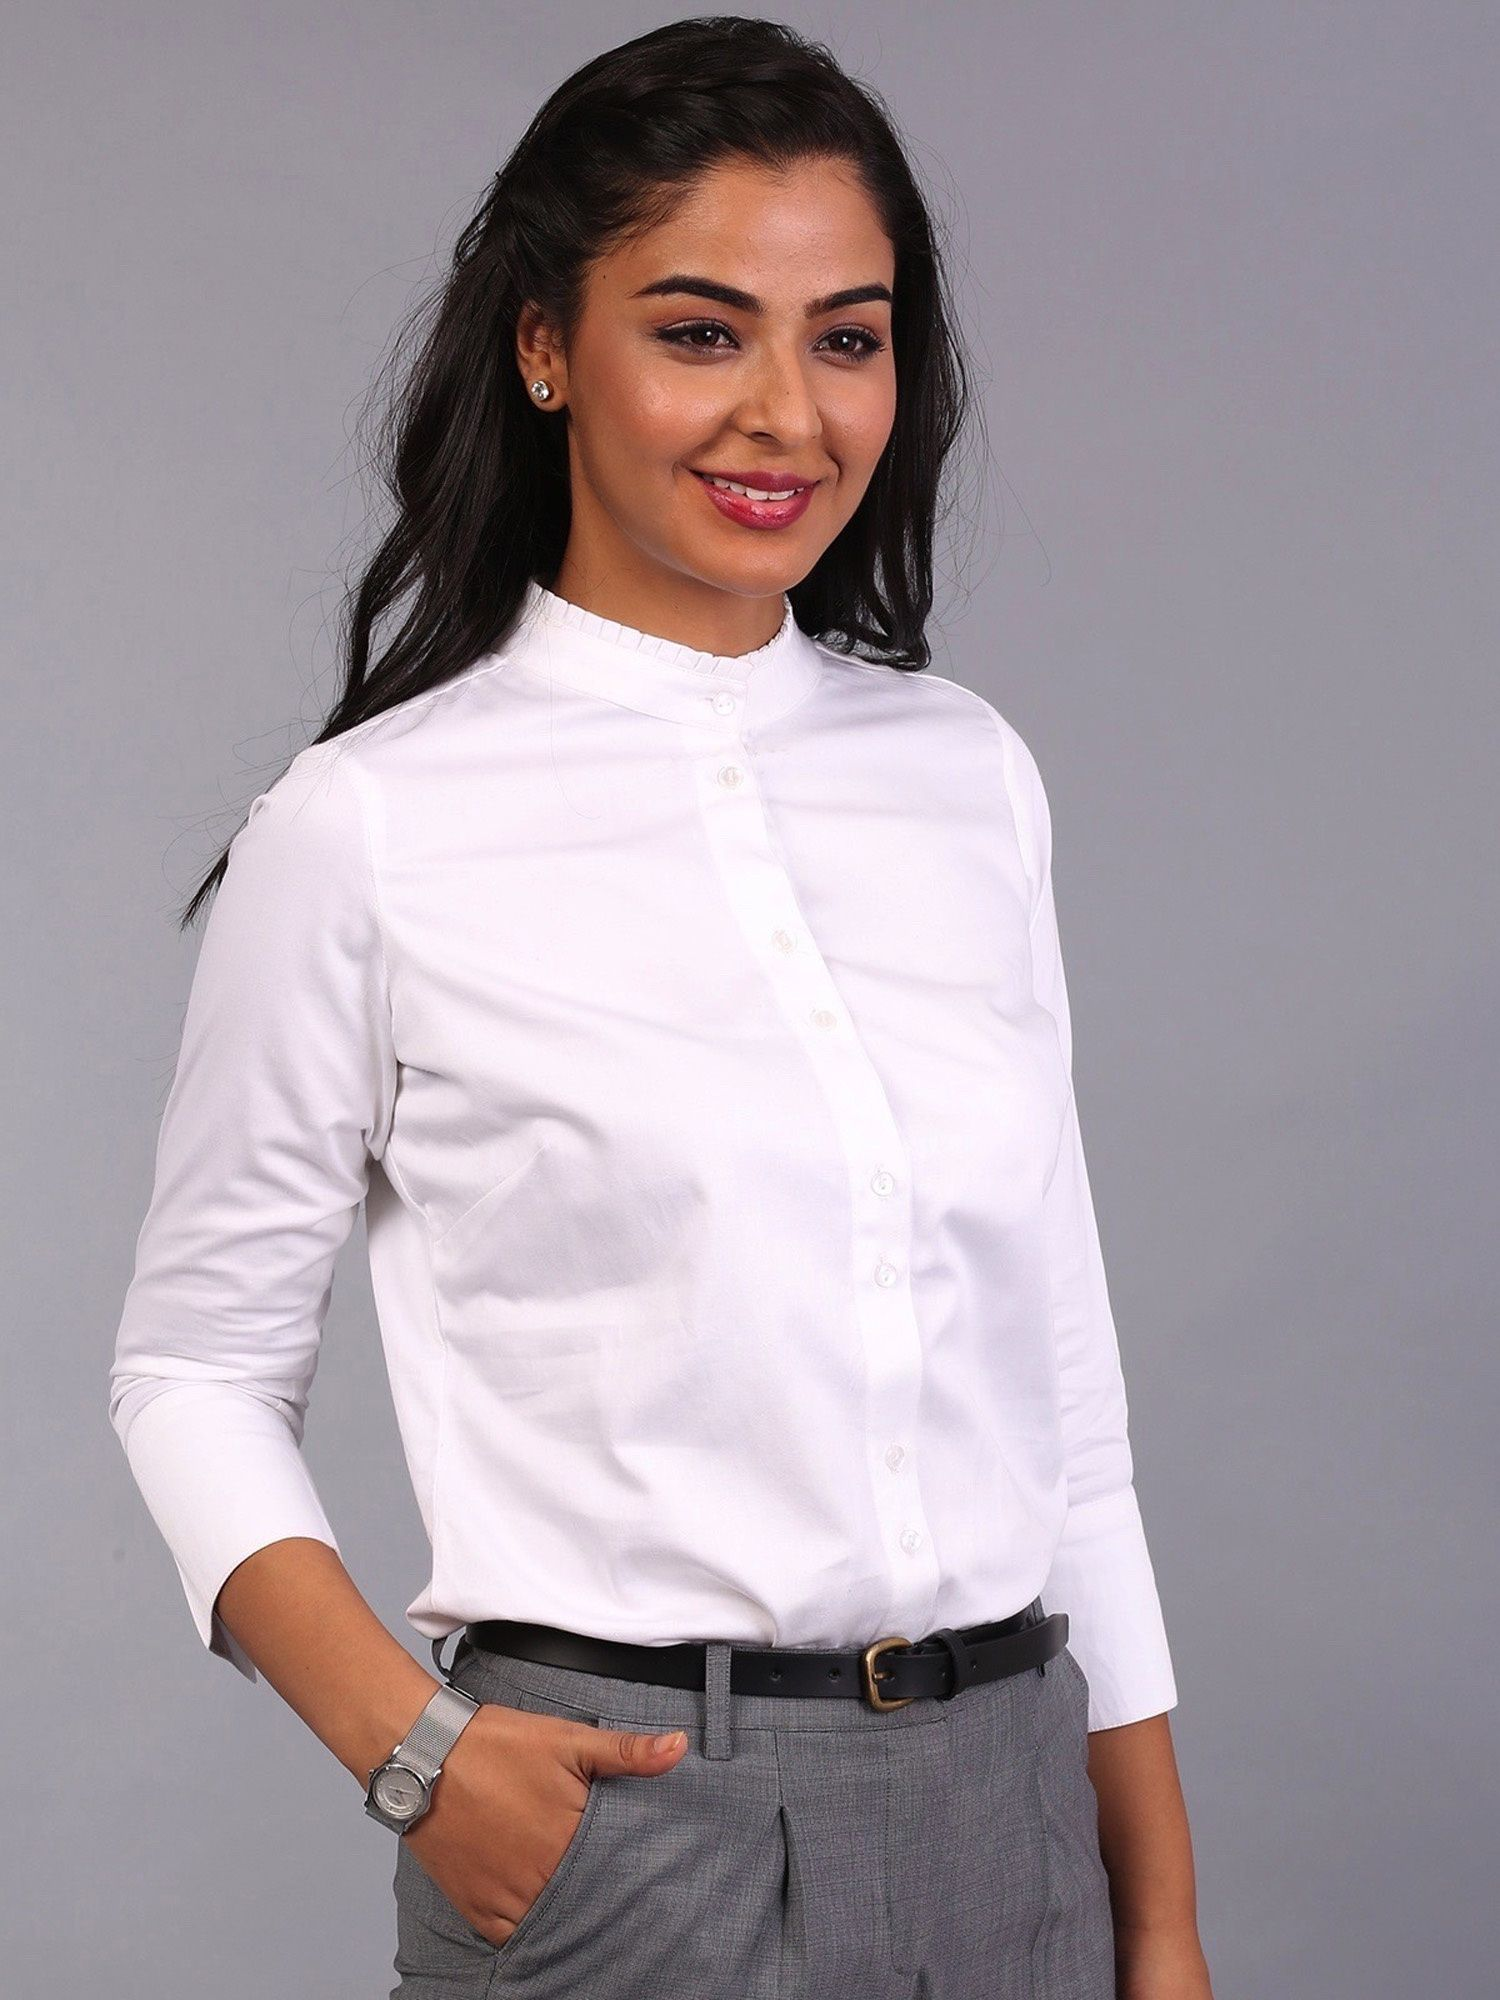 3699e8eb075 FableStreet Shirts Tops and Crop Tops : Buy FableStreet Frill ...